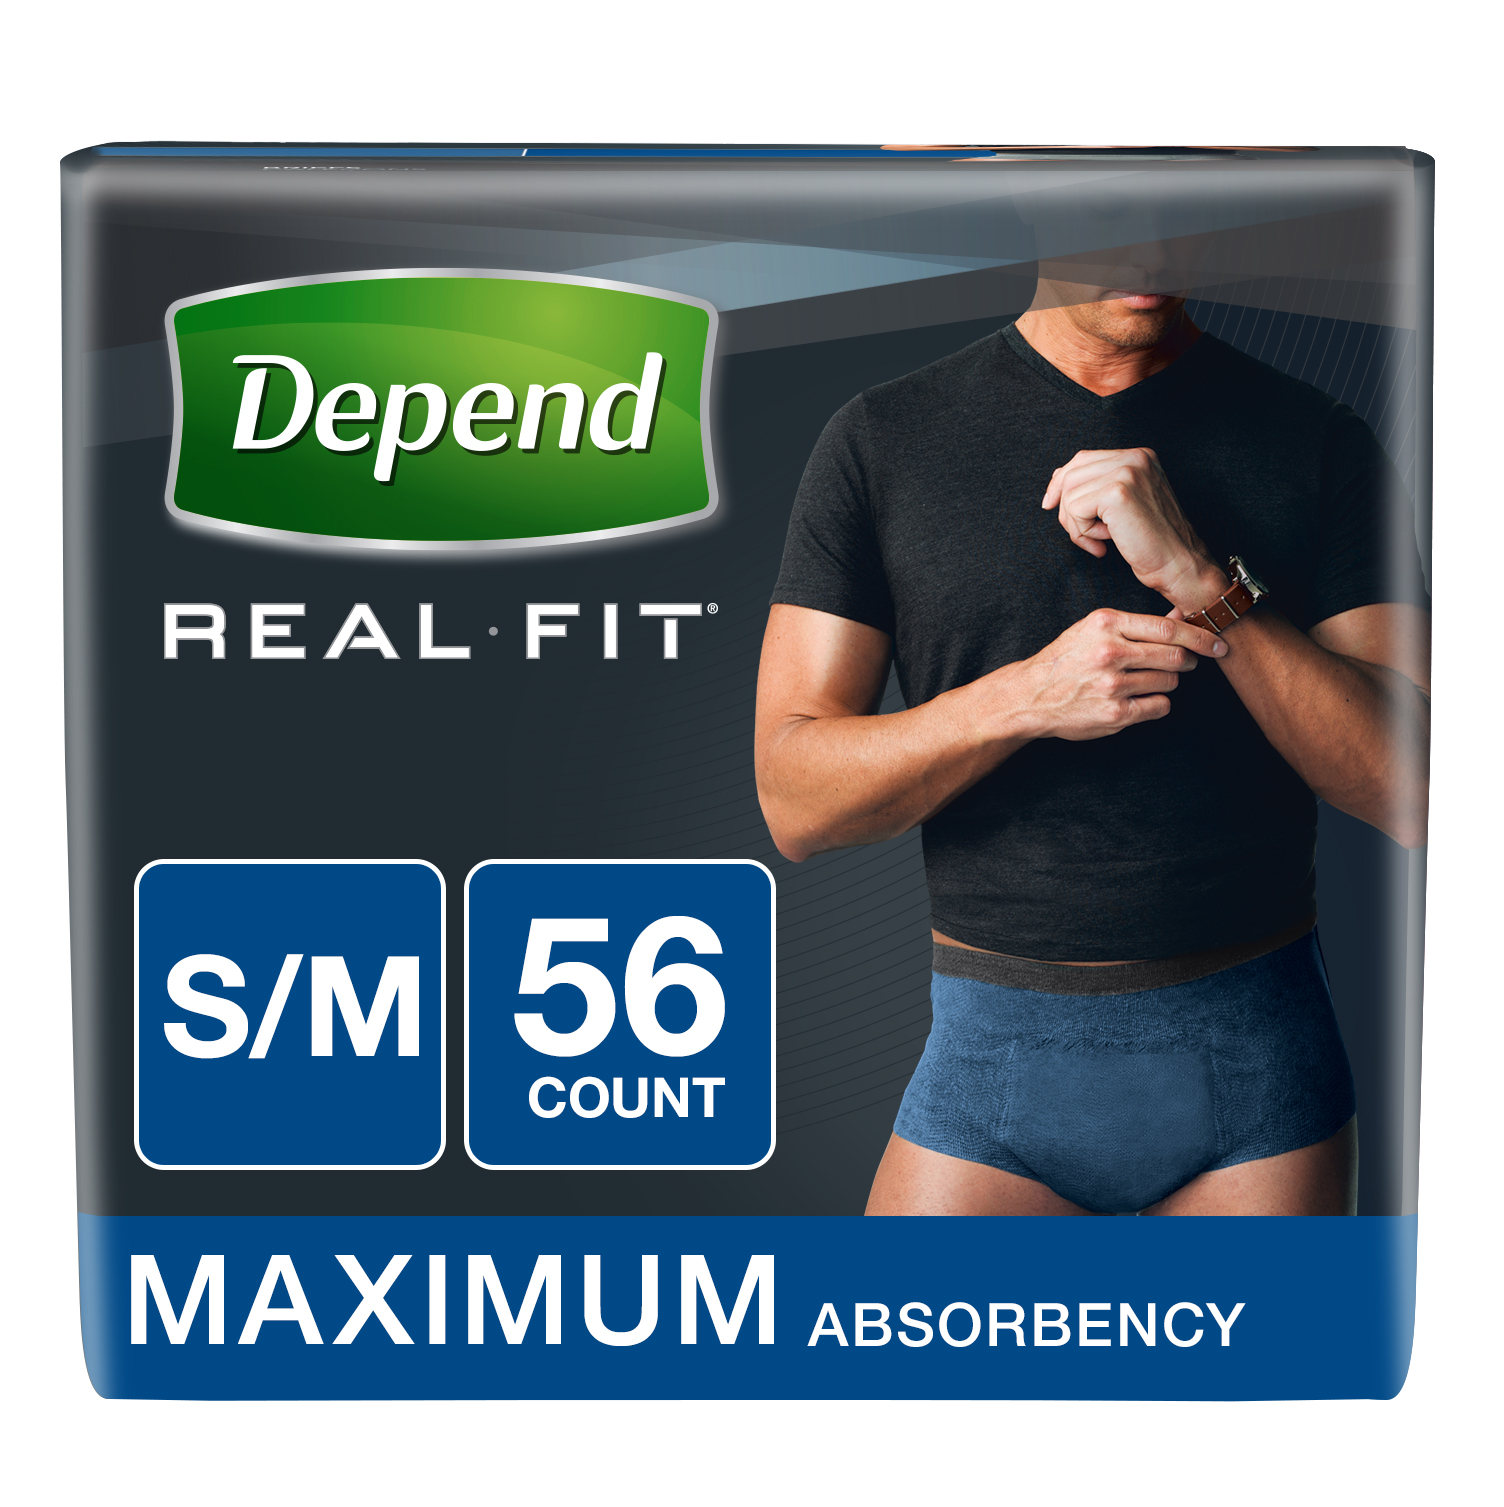 Depend Real Fit Incontinence Briefs for Men, Maximum Absorbency, S/M, 56 Ct